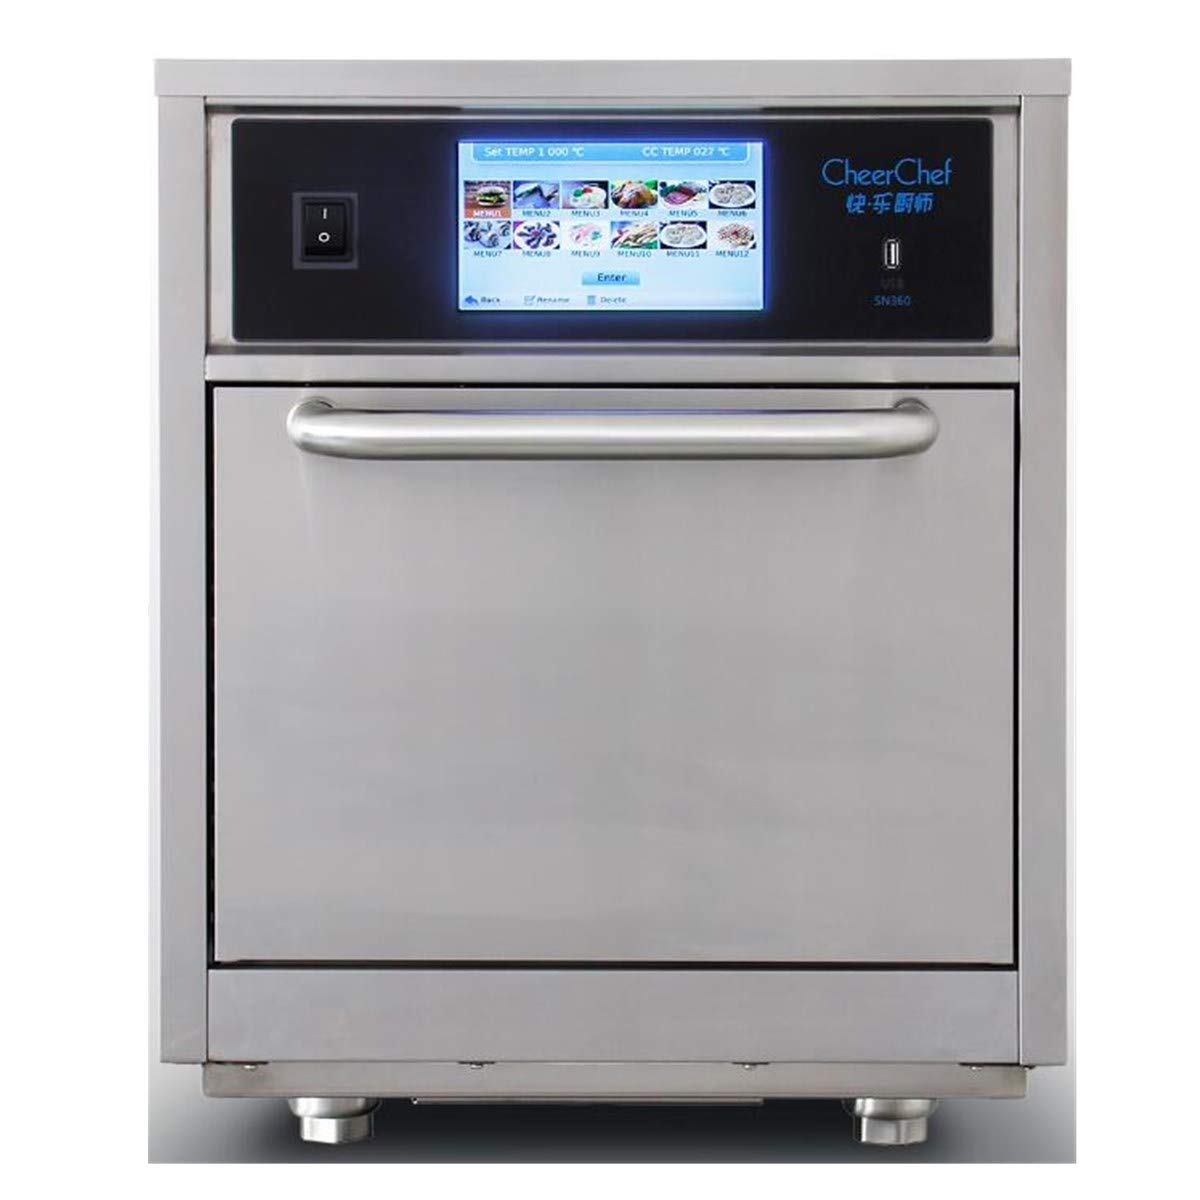 Cheerchef High-Power High-Speed Accelerated Cooking Countertop Oven